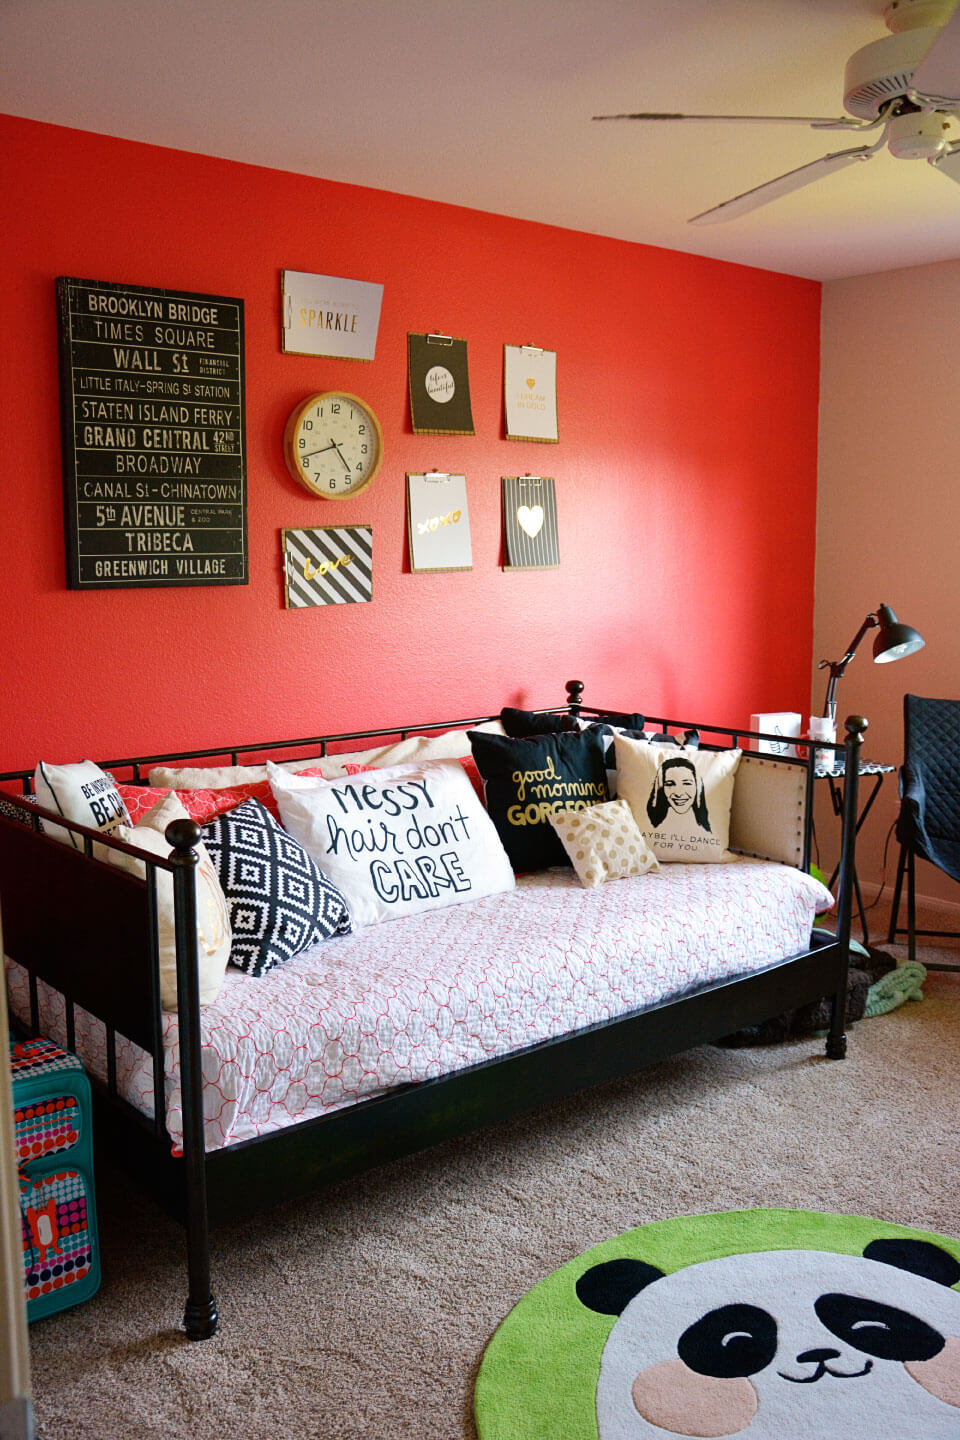 Teen Girl's Room: A simple update to a girls bedroom to make it all hers! via www.thirtyhandmadedays.com